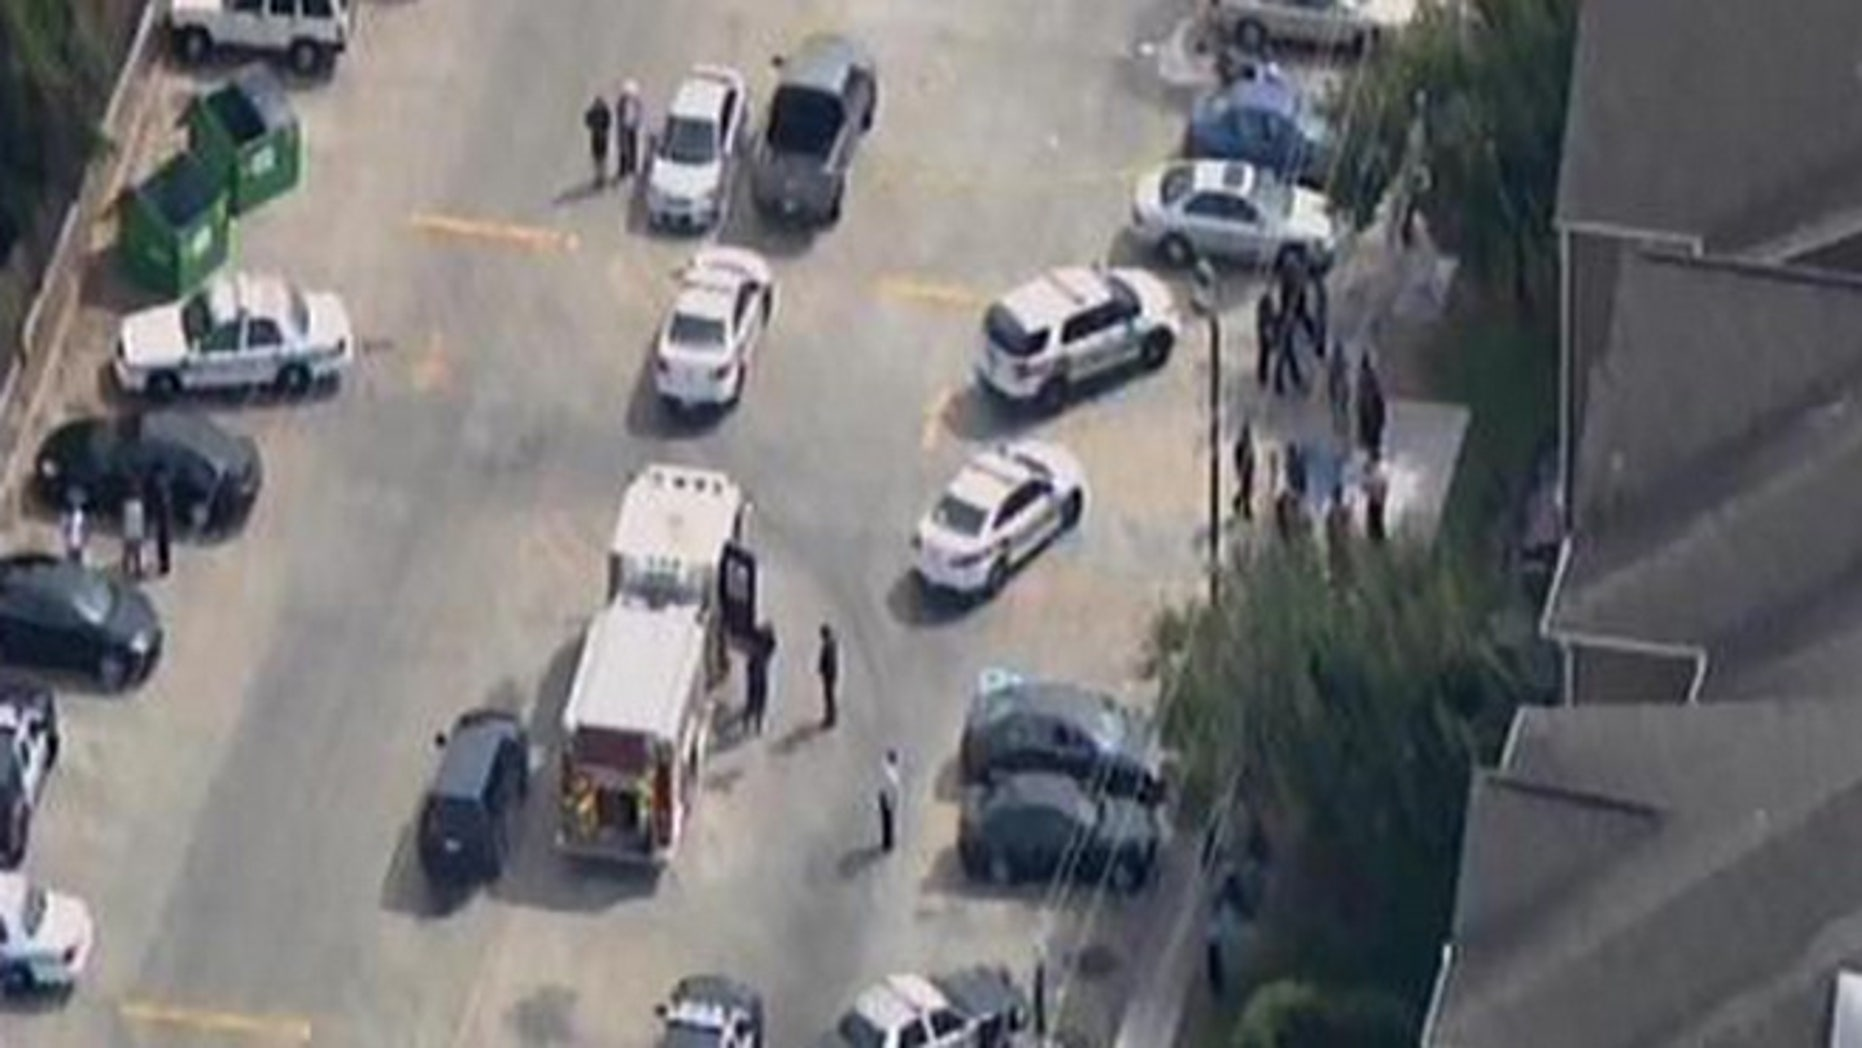 Houston authorities respond to a deadly shooting on the campus of Texas Southern University.